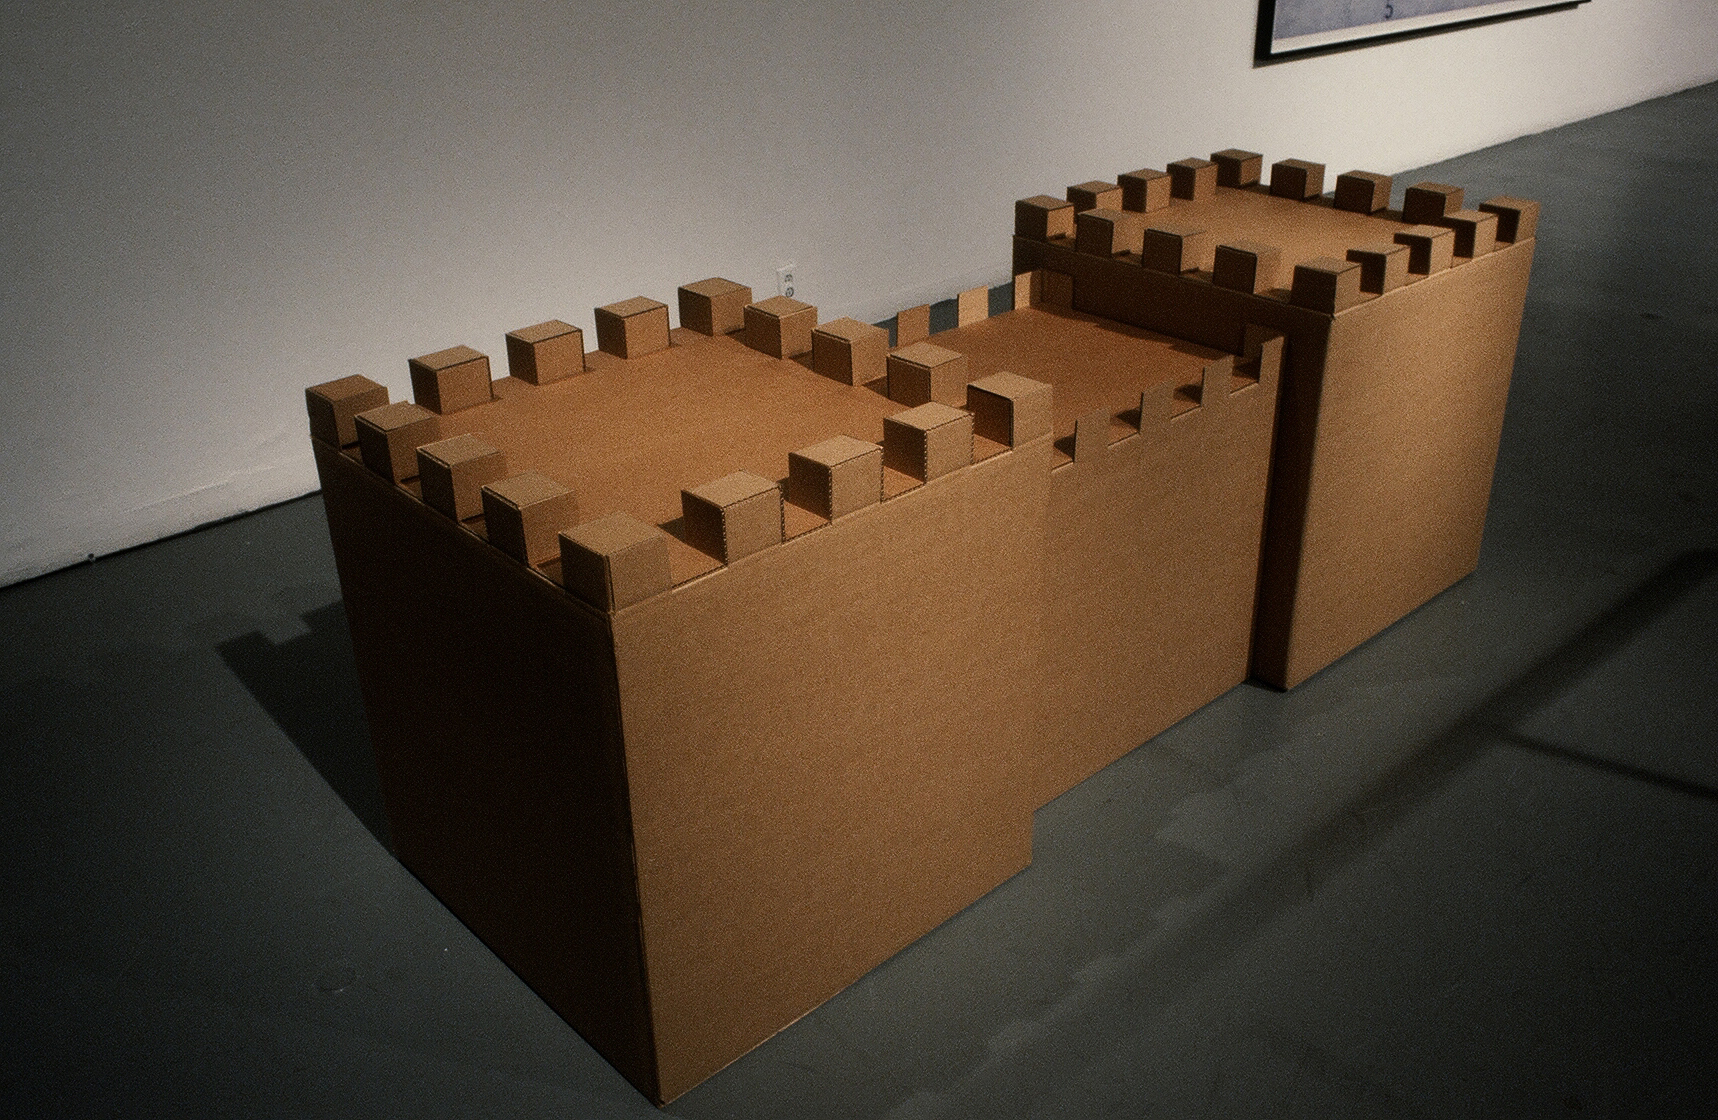 Untitled (Castle)